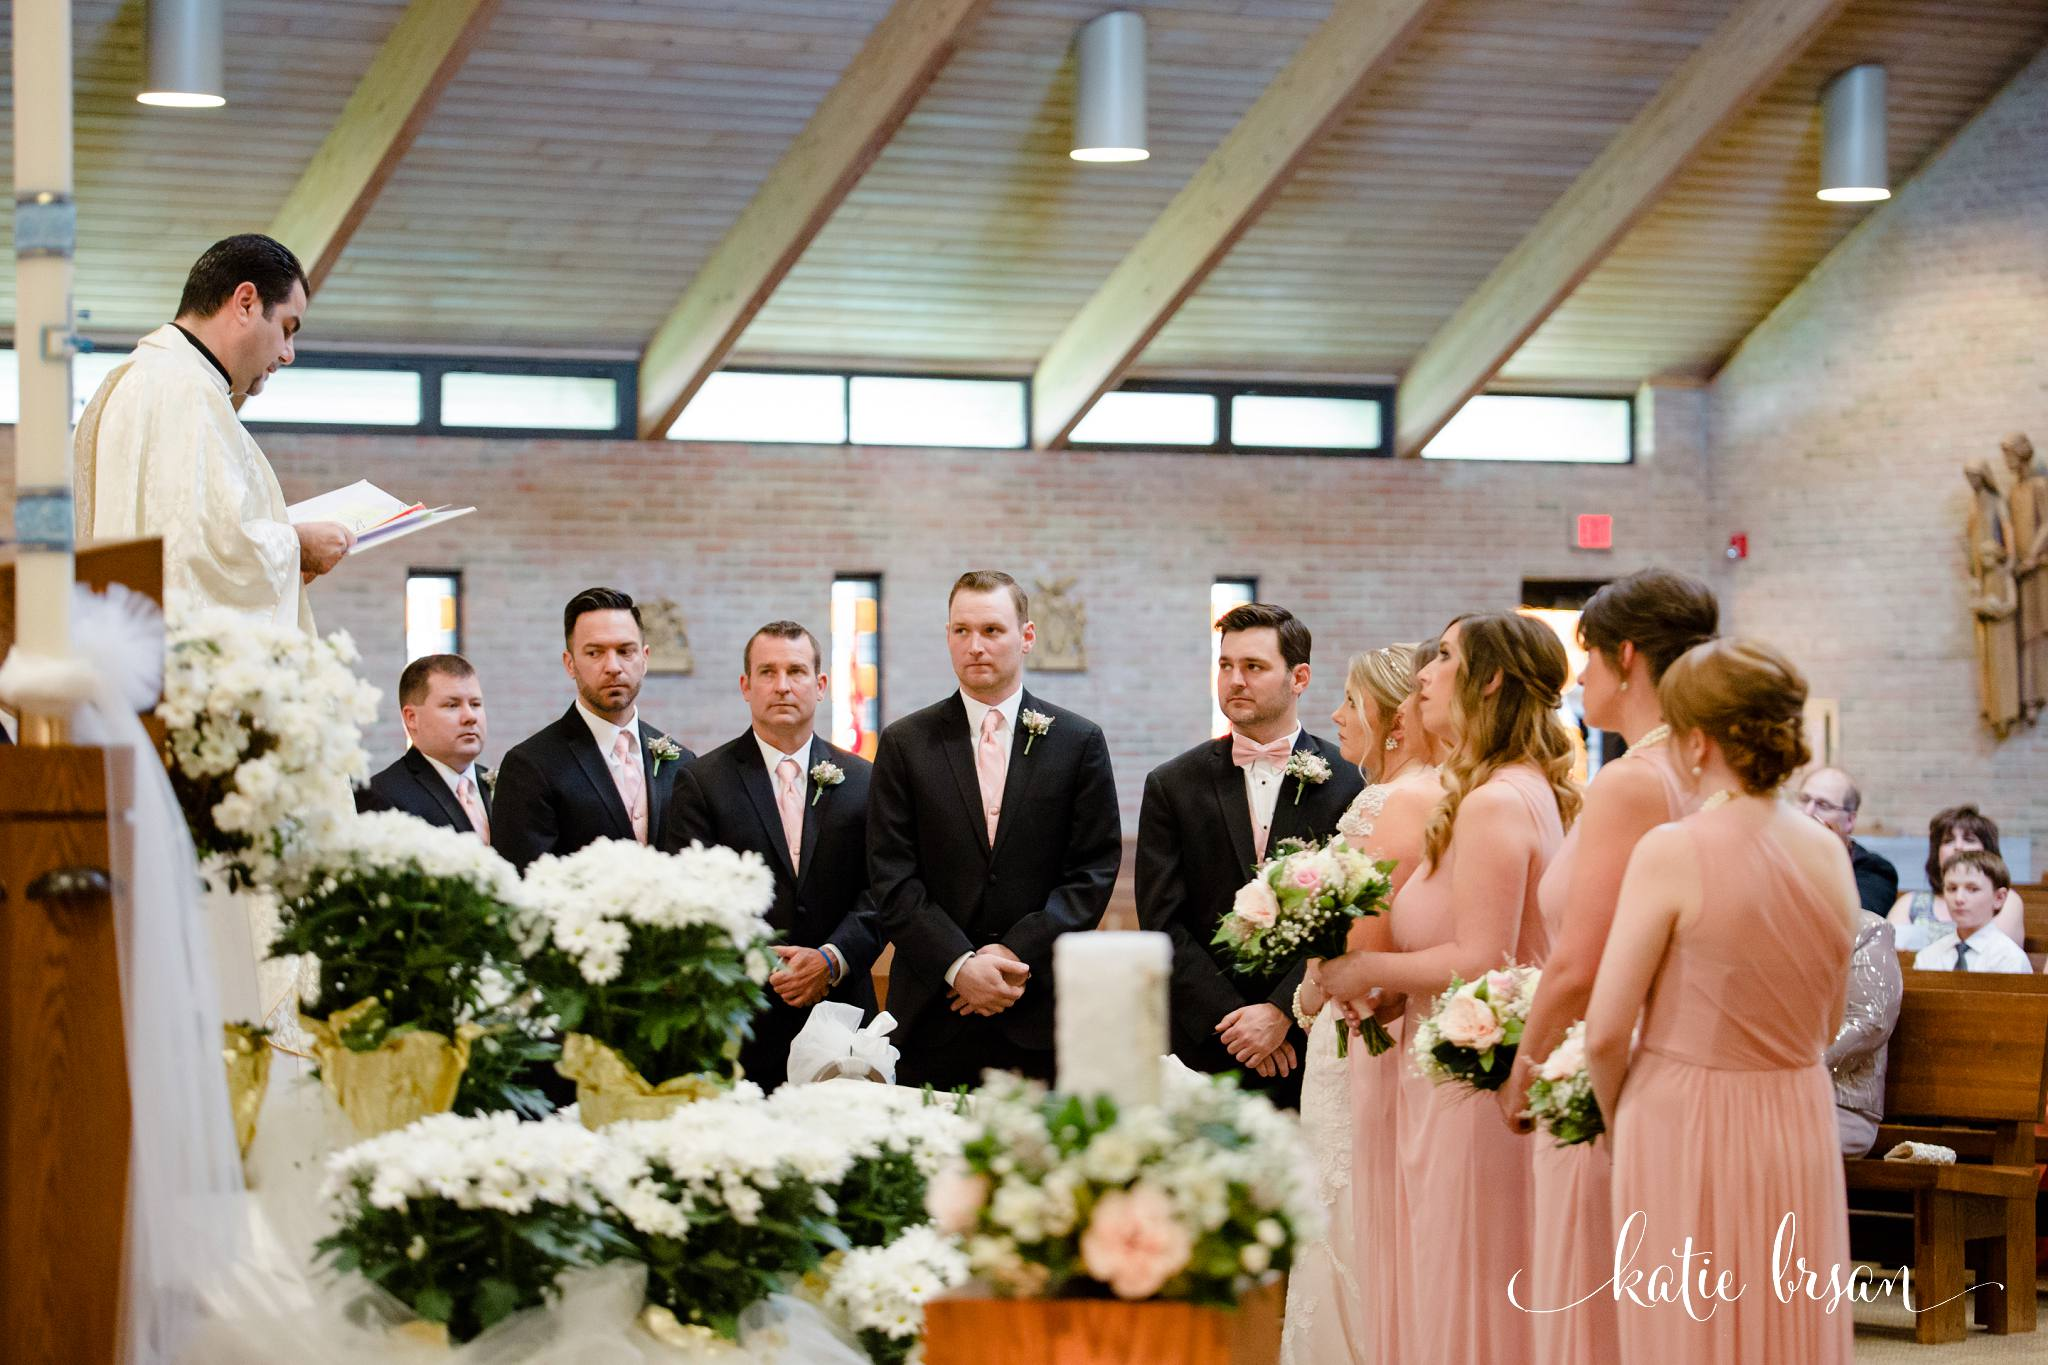 Mokena_Lemont_Wedding_Ruffled_Feathers_Wedding_1355.jpg